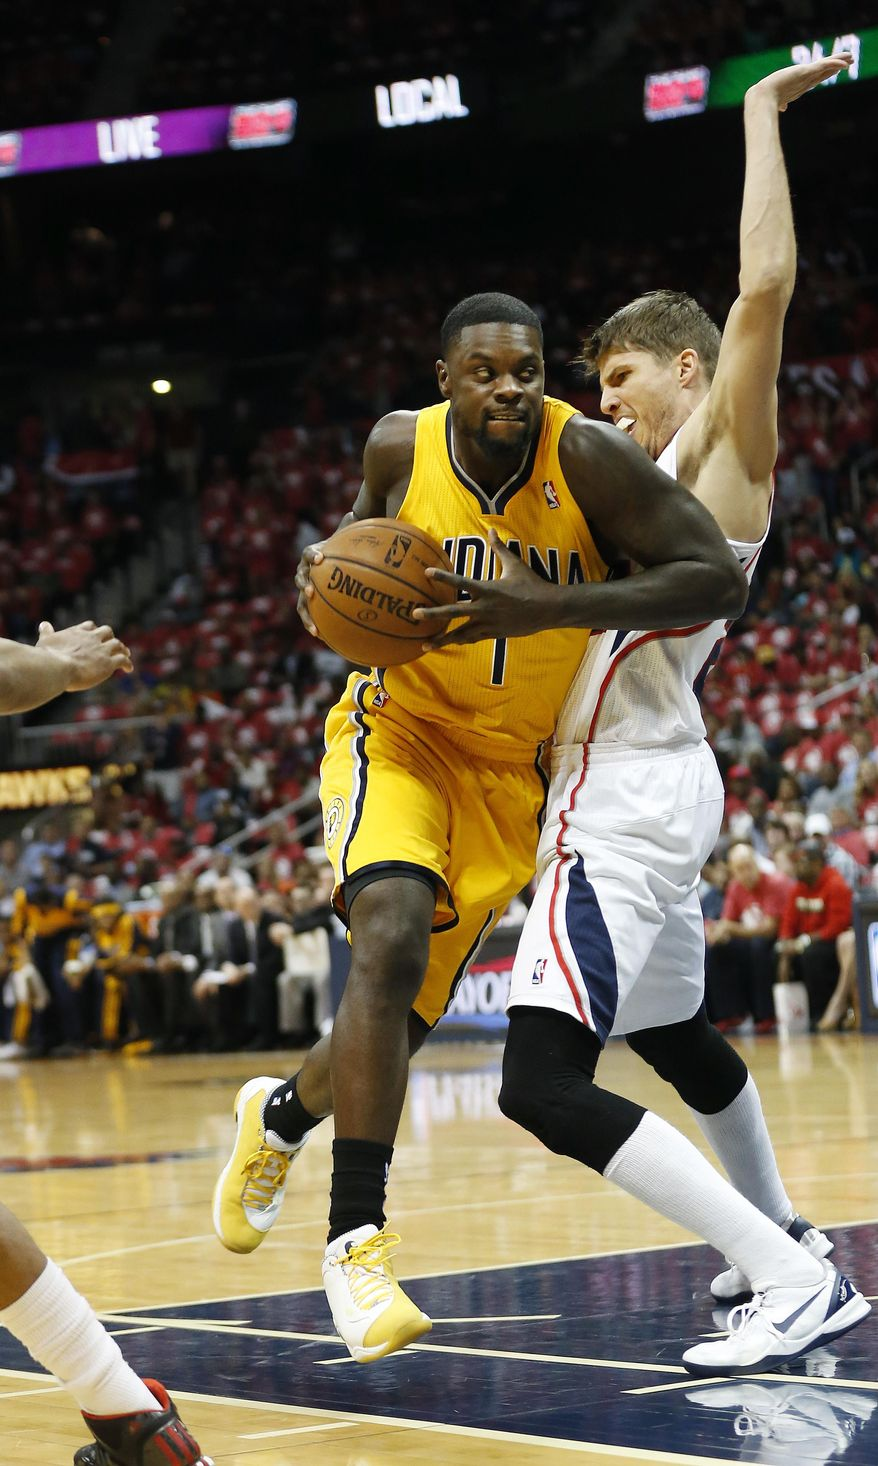 Indiana Pacers guard Lance Stephenson (1) drives against Atlanta Hawks guard Kyle Korver (26) in the first half of Game 6 of a first-round NBA basketball playoff series in Atlanta, Thursday, May 1, 2014. (AP Photo/John Bazemore)